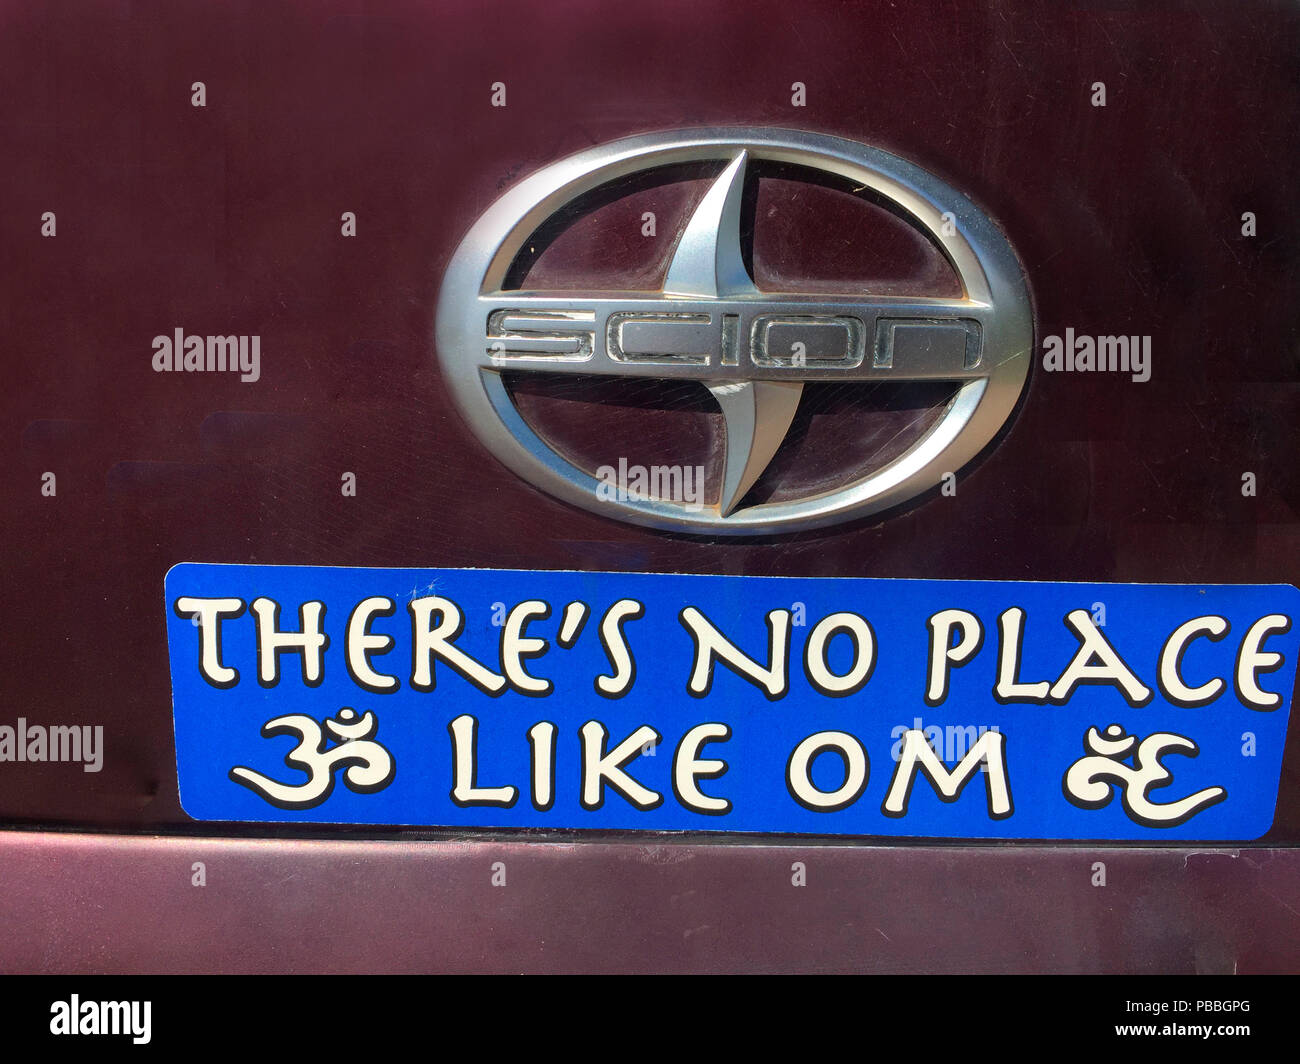 A sign at the back of a van, Maui, Hawaii.  No Place Like Home, or Om, in English and Sanskrit script, Maui, Hawaii, USA - Stock Image